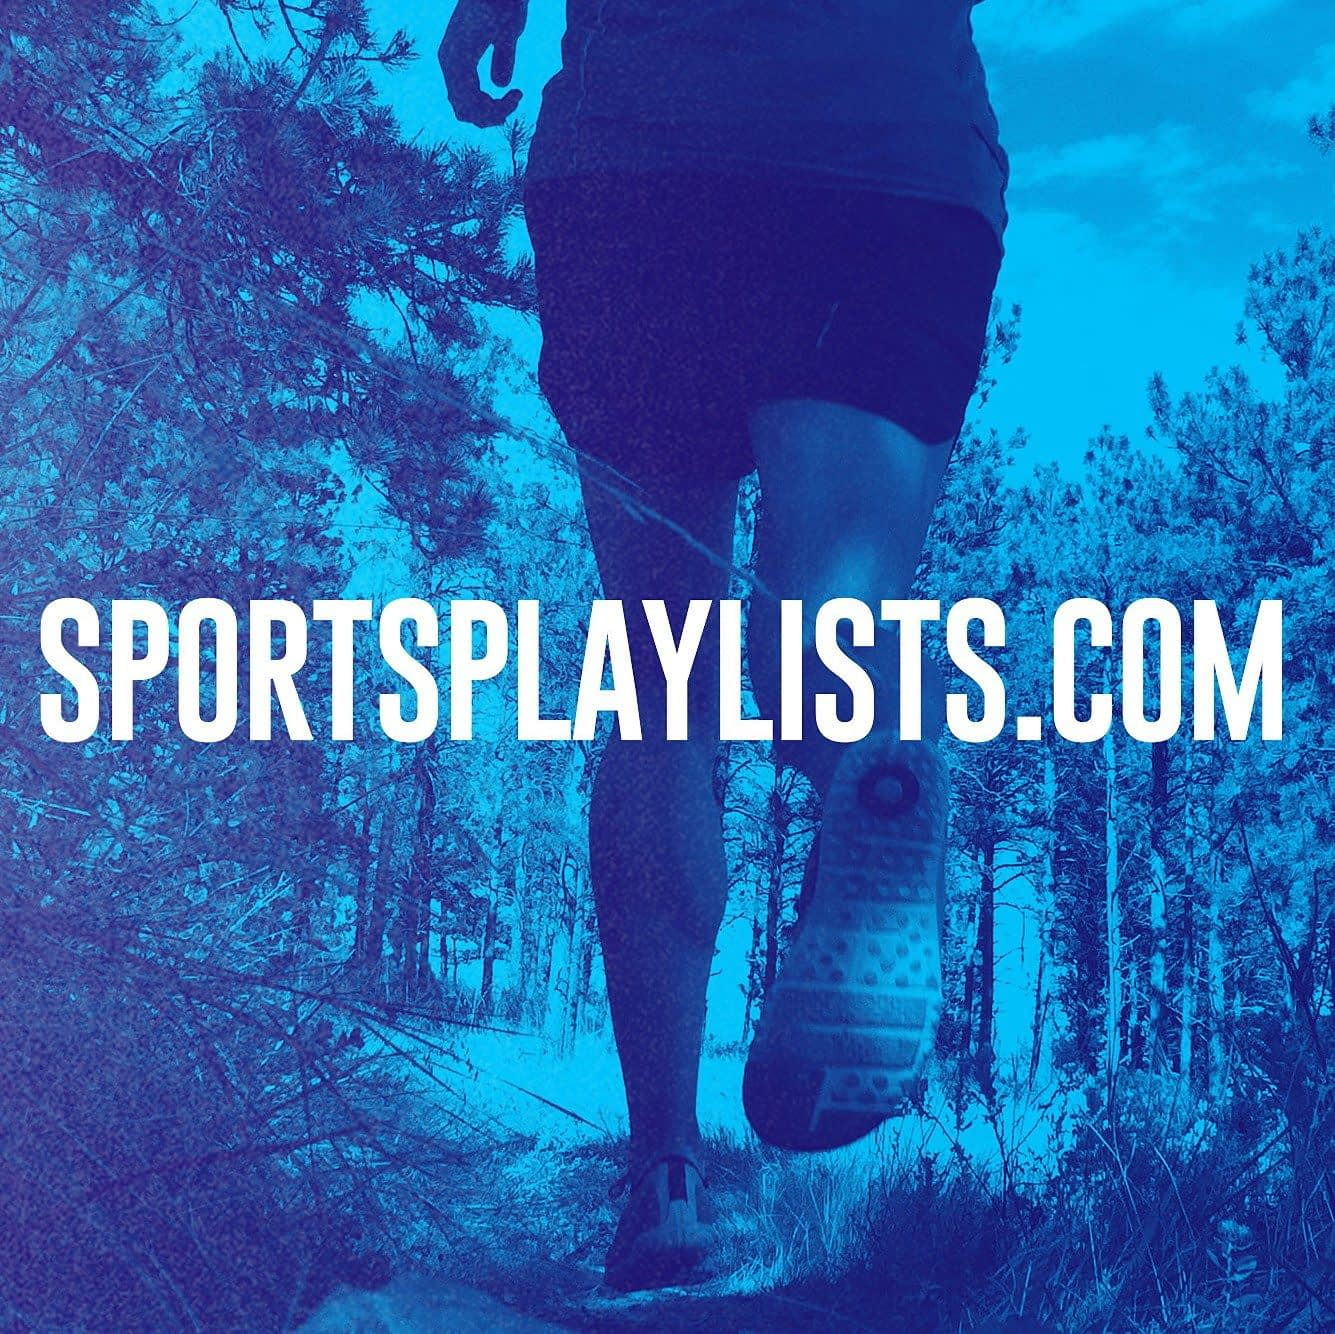 sportsplaylists.com